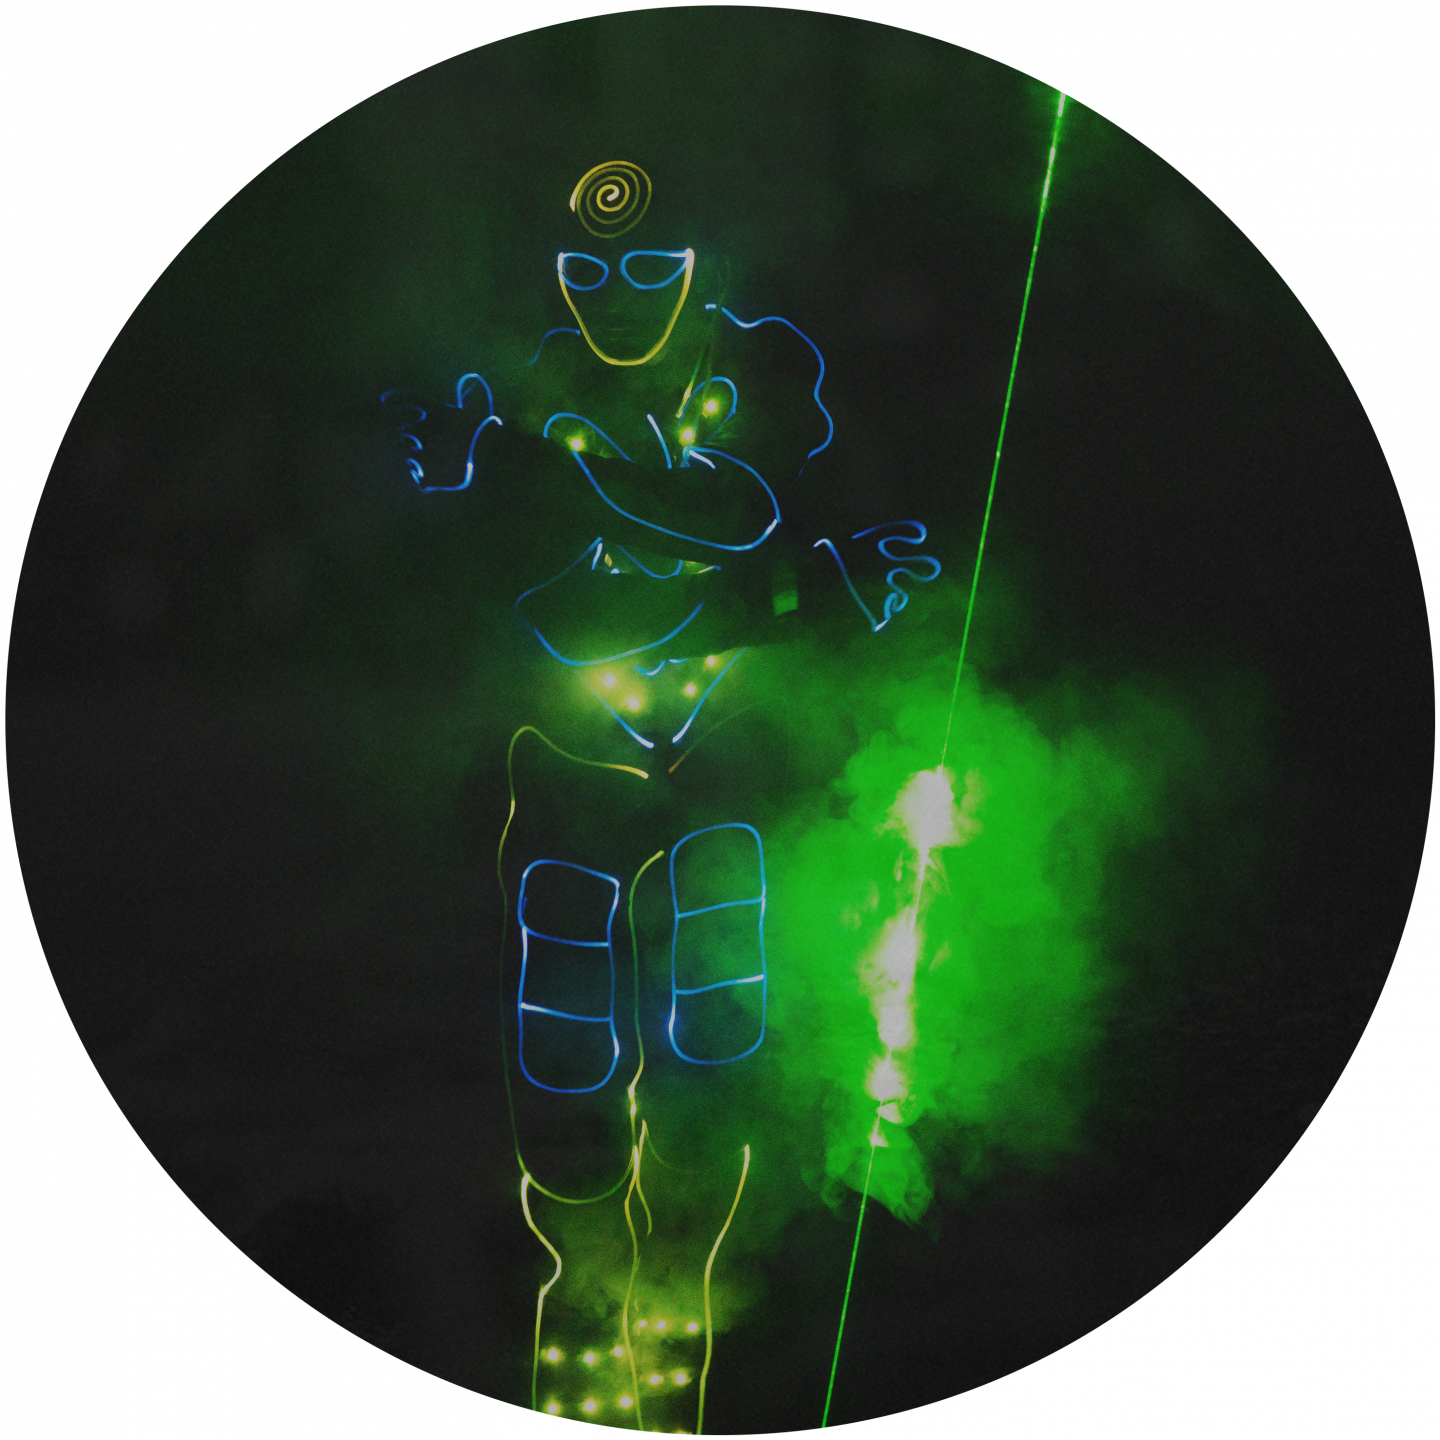 A man wearing neon lights moving through the dark with a green laser. team building, lasertag, light, neon, team, event, business, adidas, GamePlan A